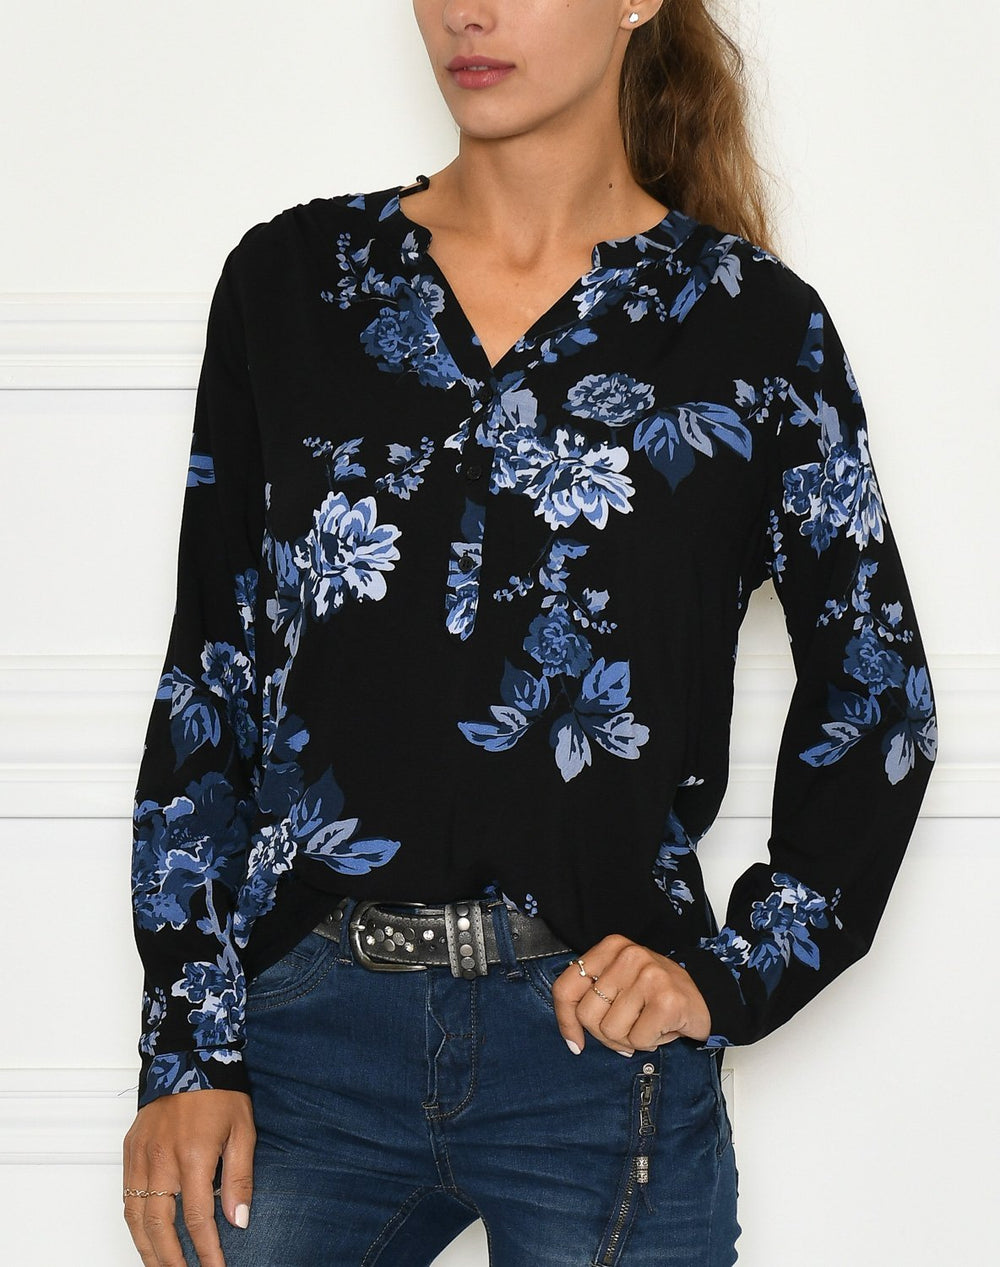 B.Young BYHenna v neck blouse moonlit ocean mix - Online-Mode